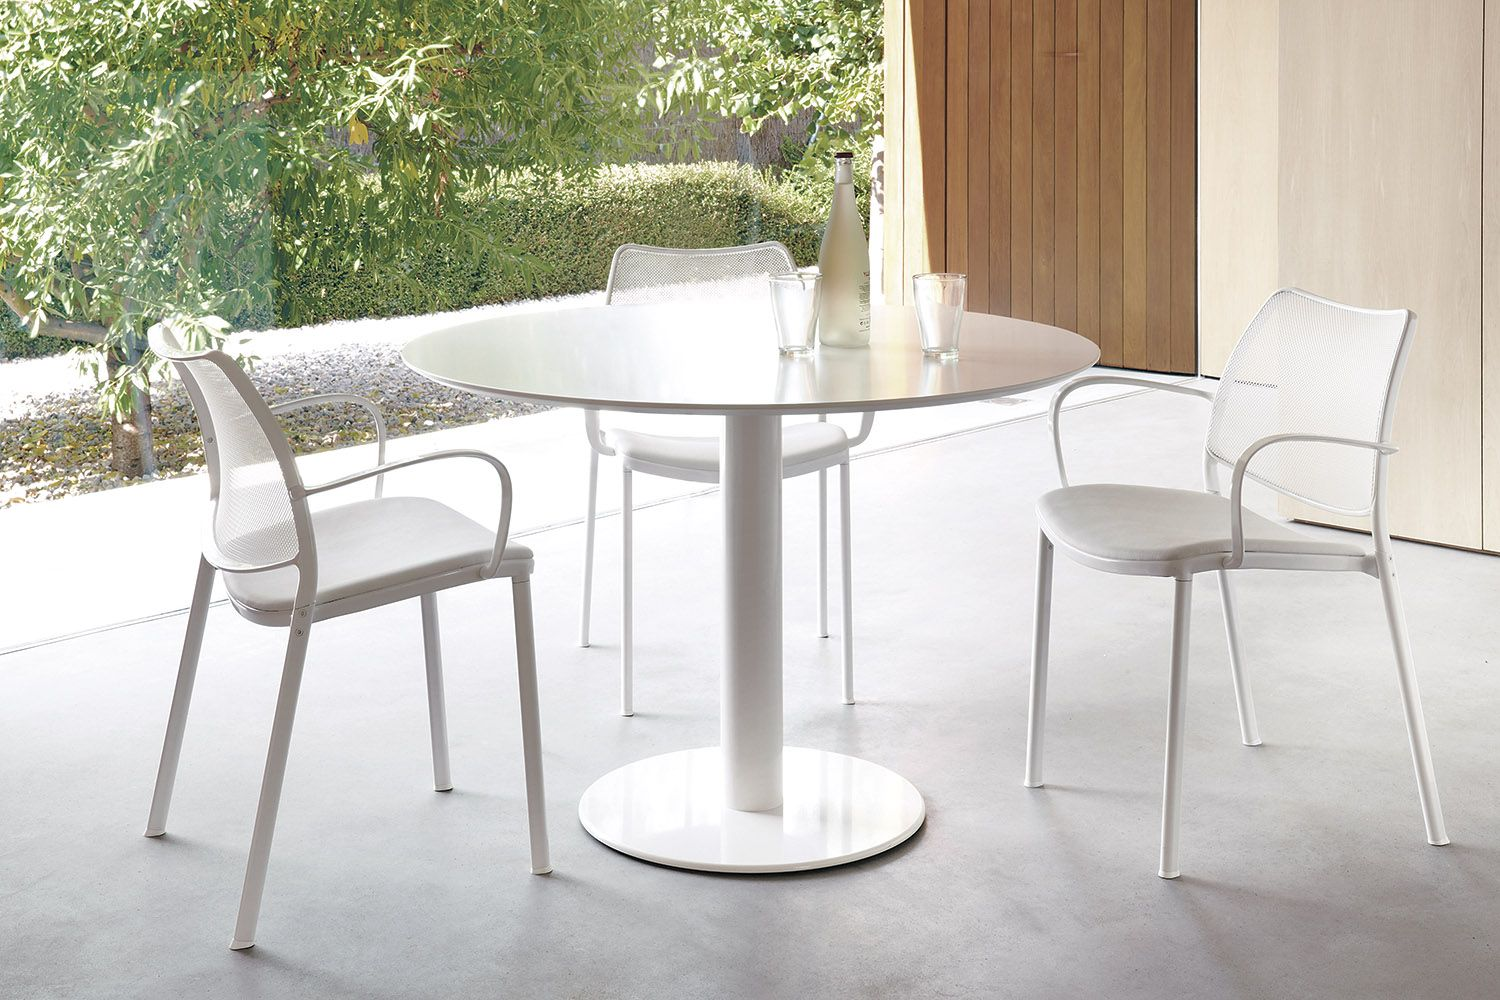 Stua Gas Chair Comfortable Stacking Design Chair Design Cafe Chairs Chair